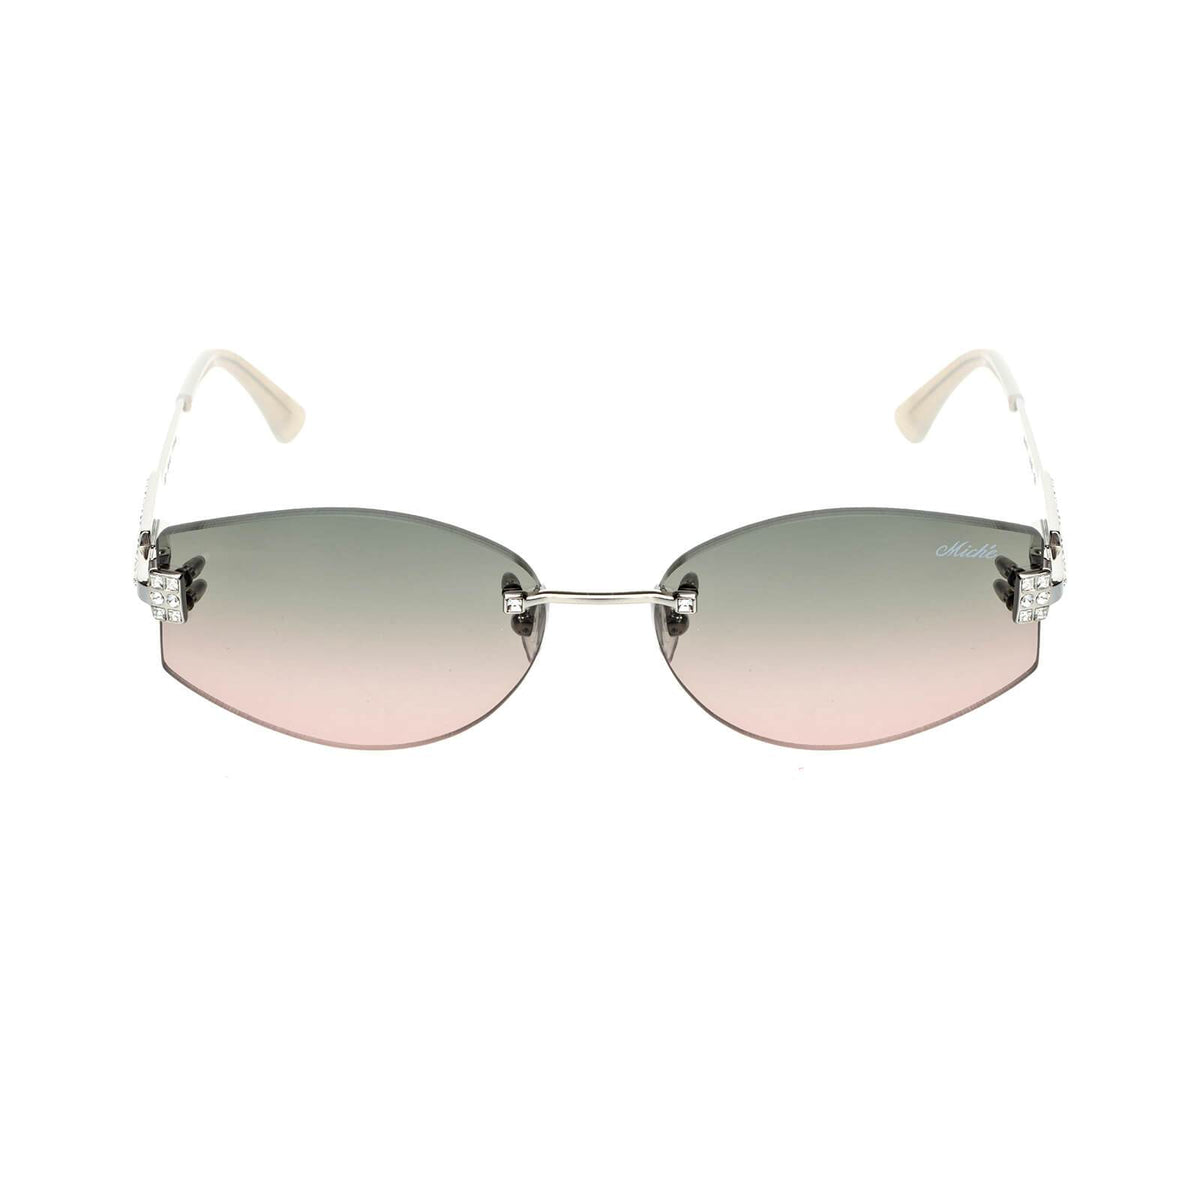 Miché Empress Sunglasses - Grey Brown Fade - Silver - White